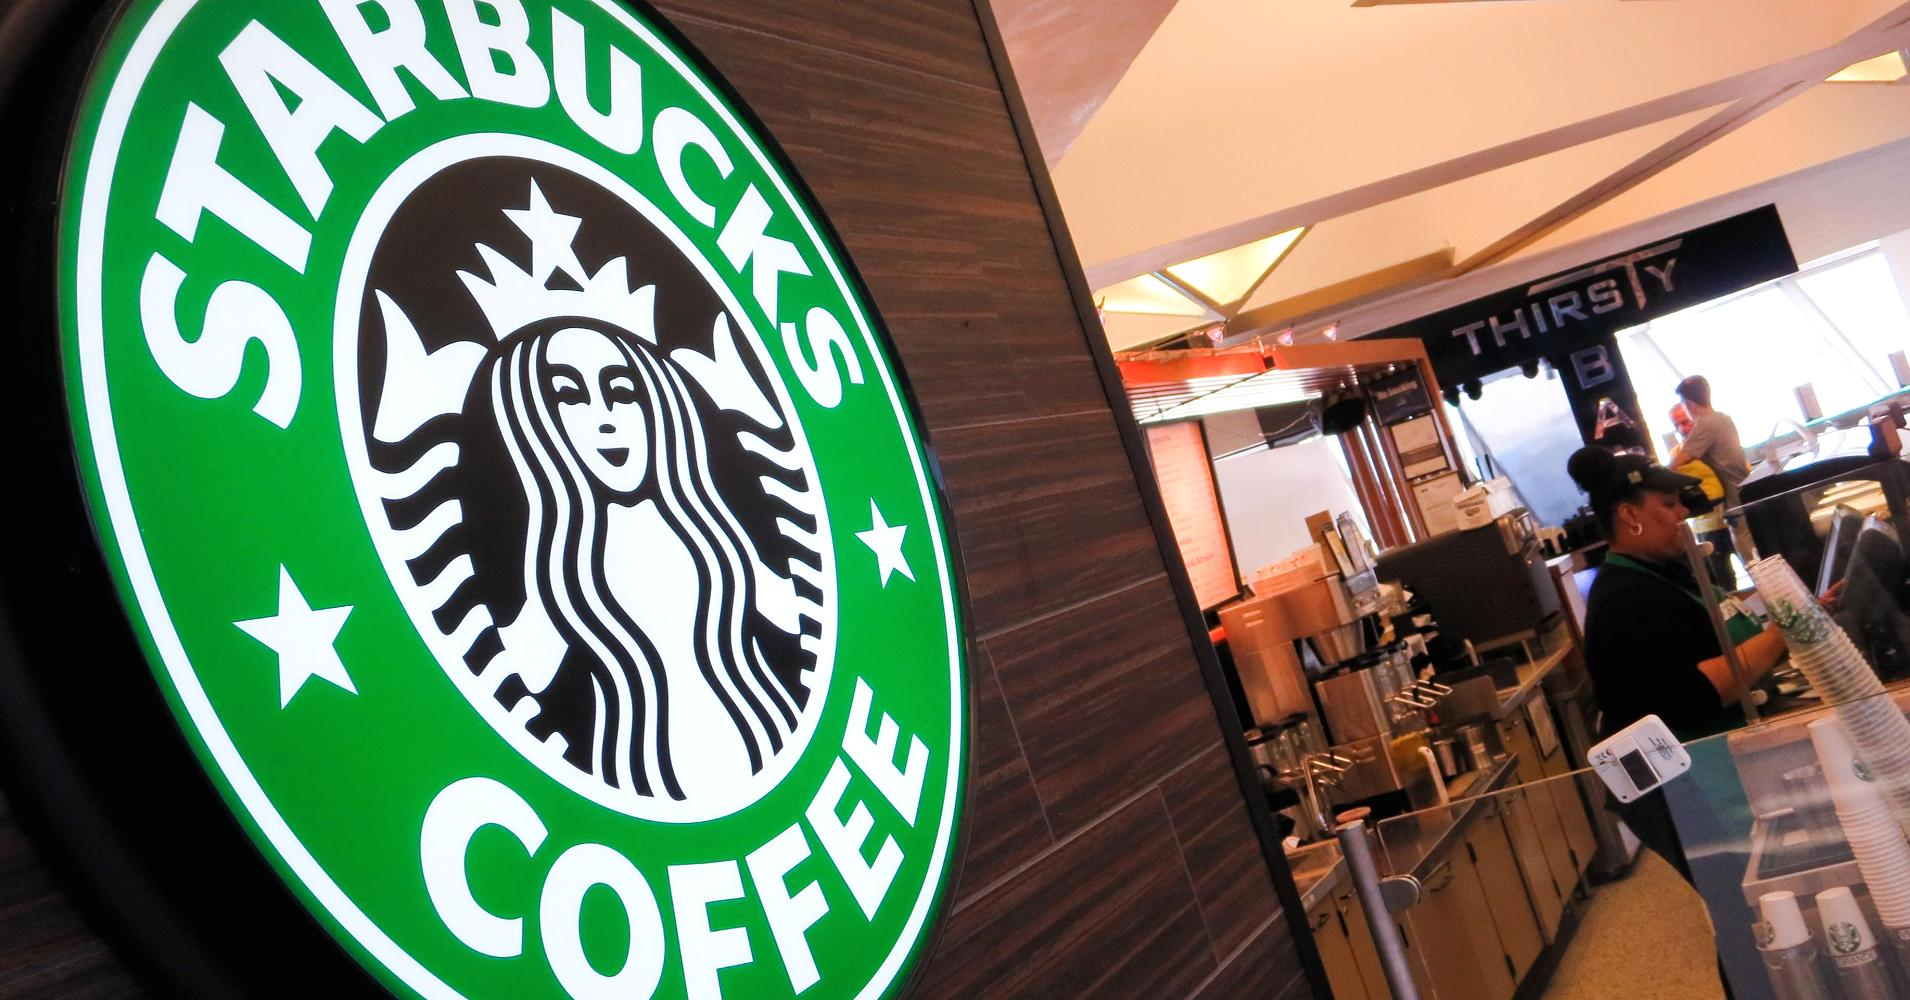 Spotify is coming to a Starbucks near you